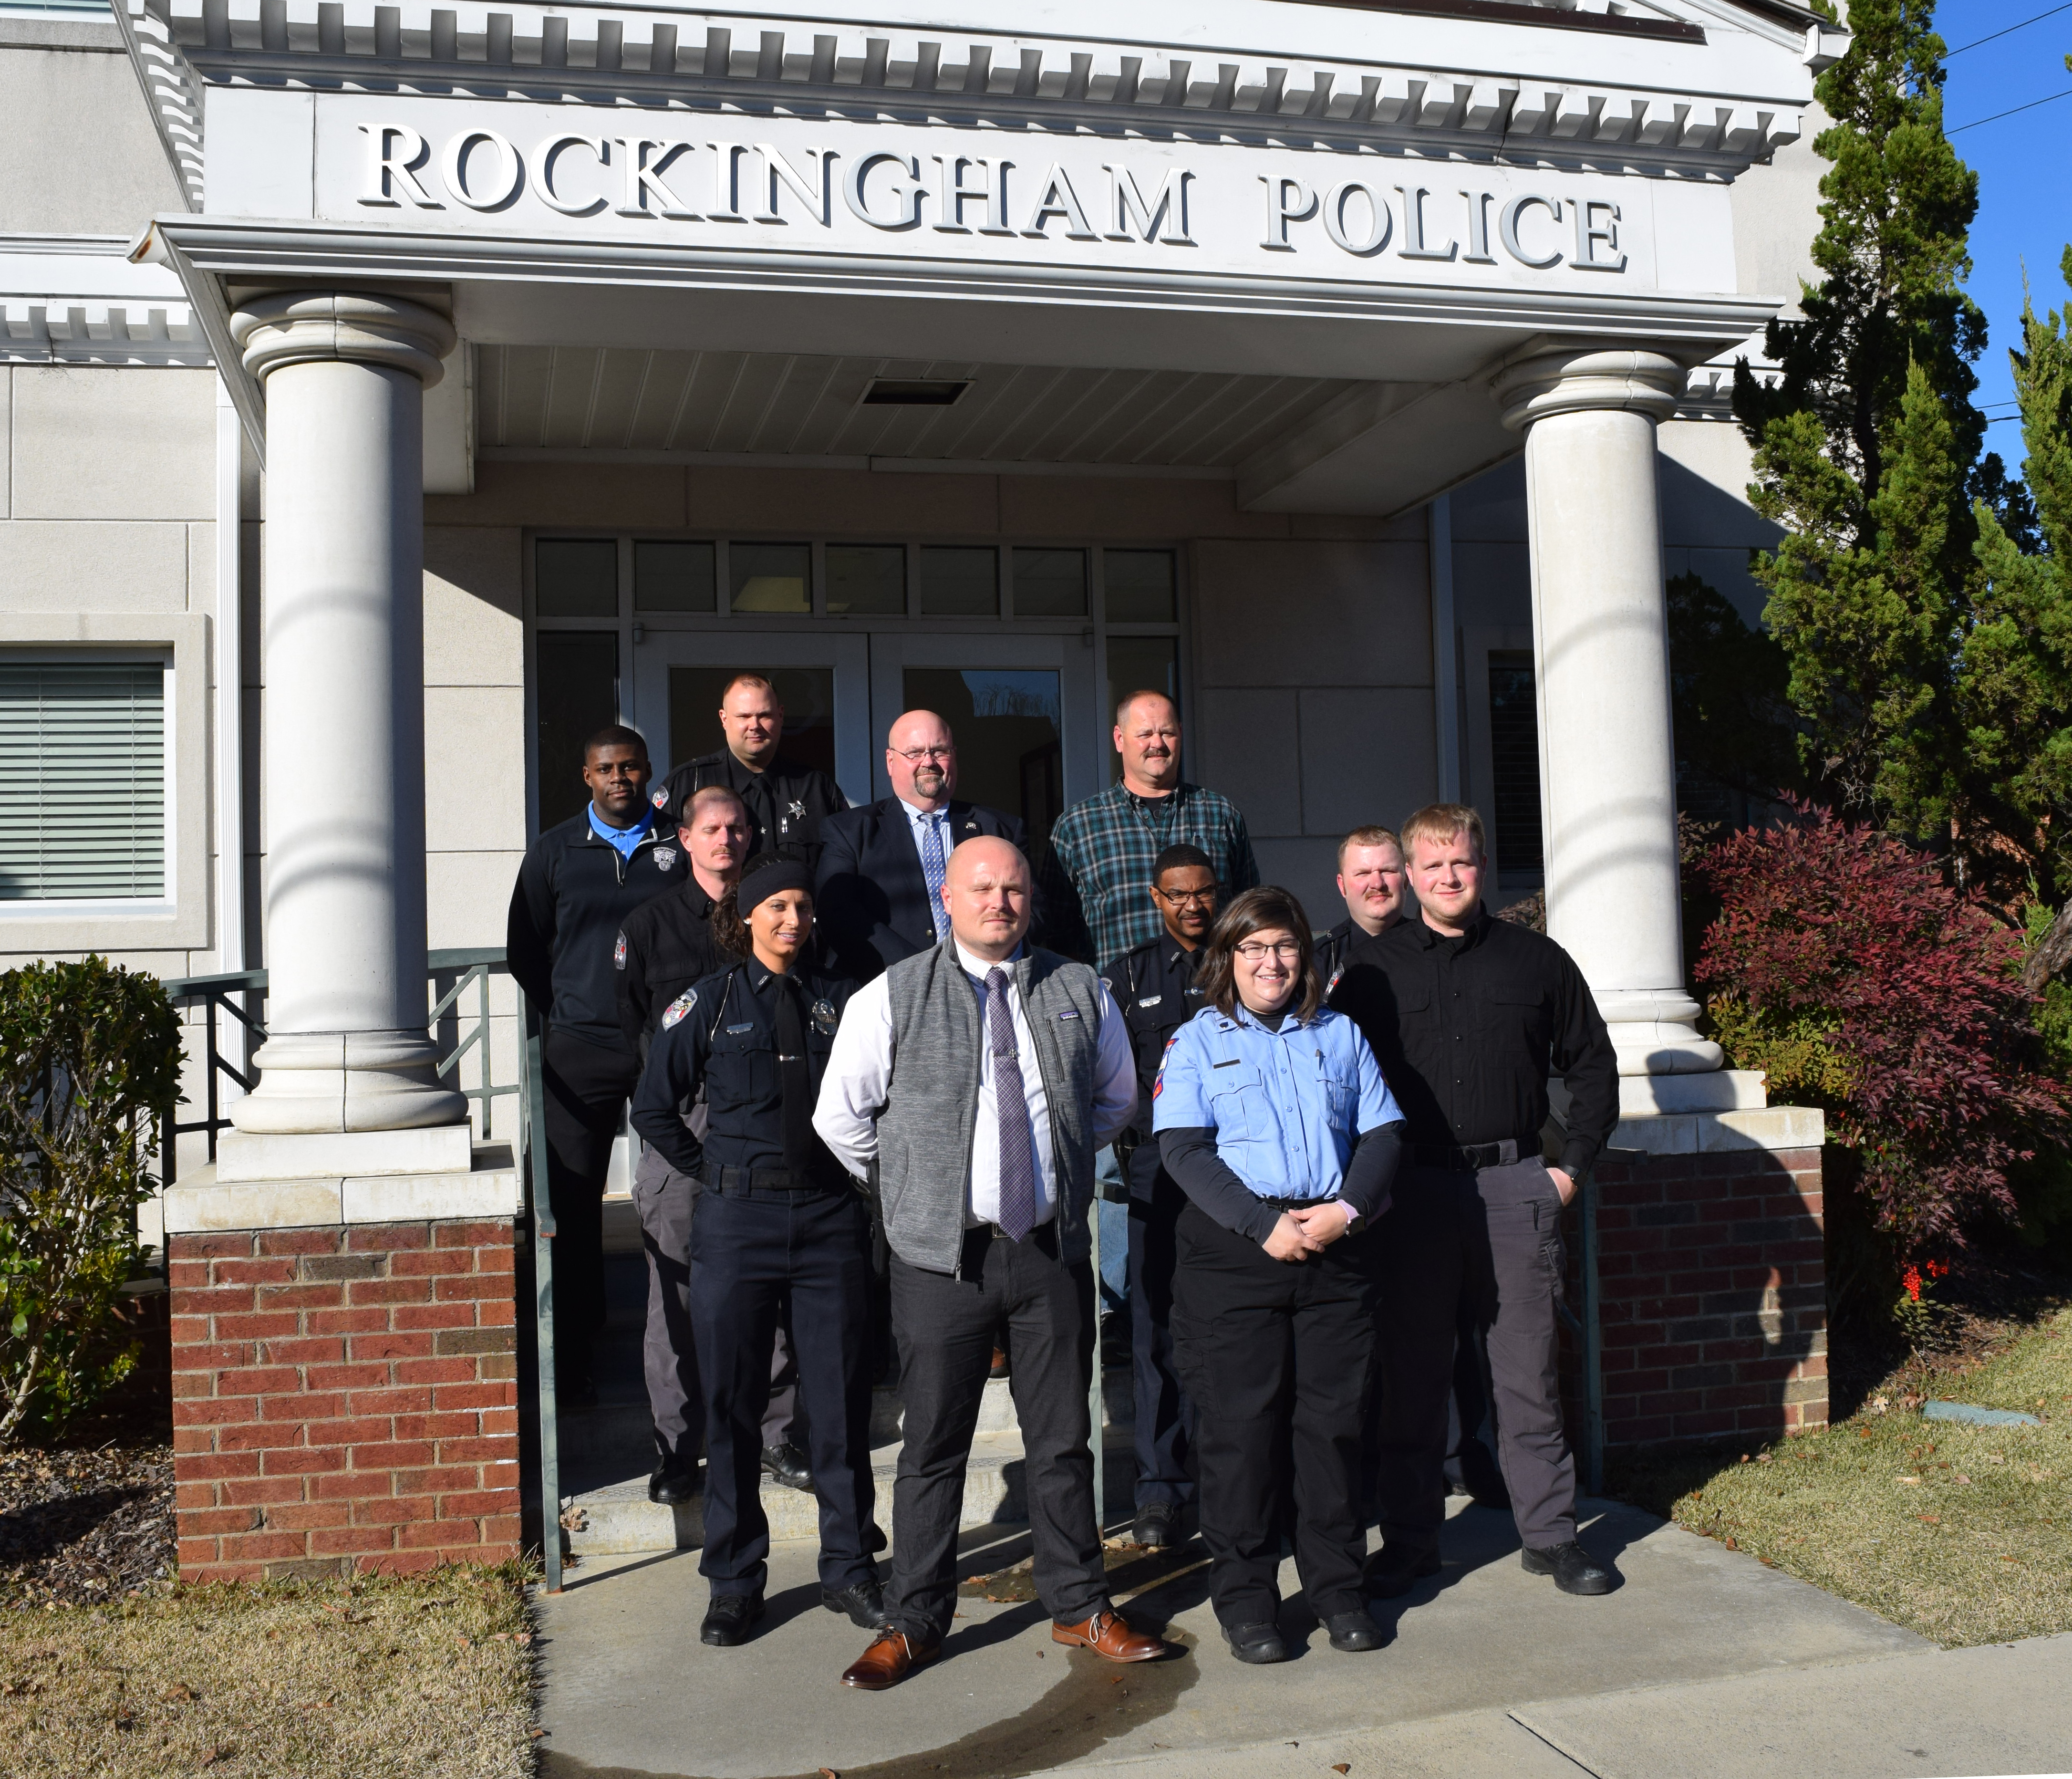 First responders stand on the steps of the Rockingham Police Department.